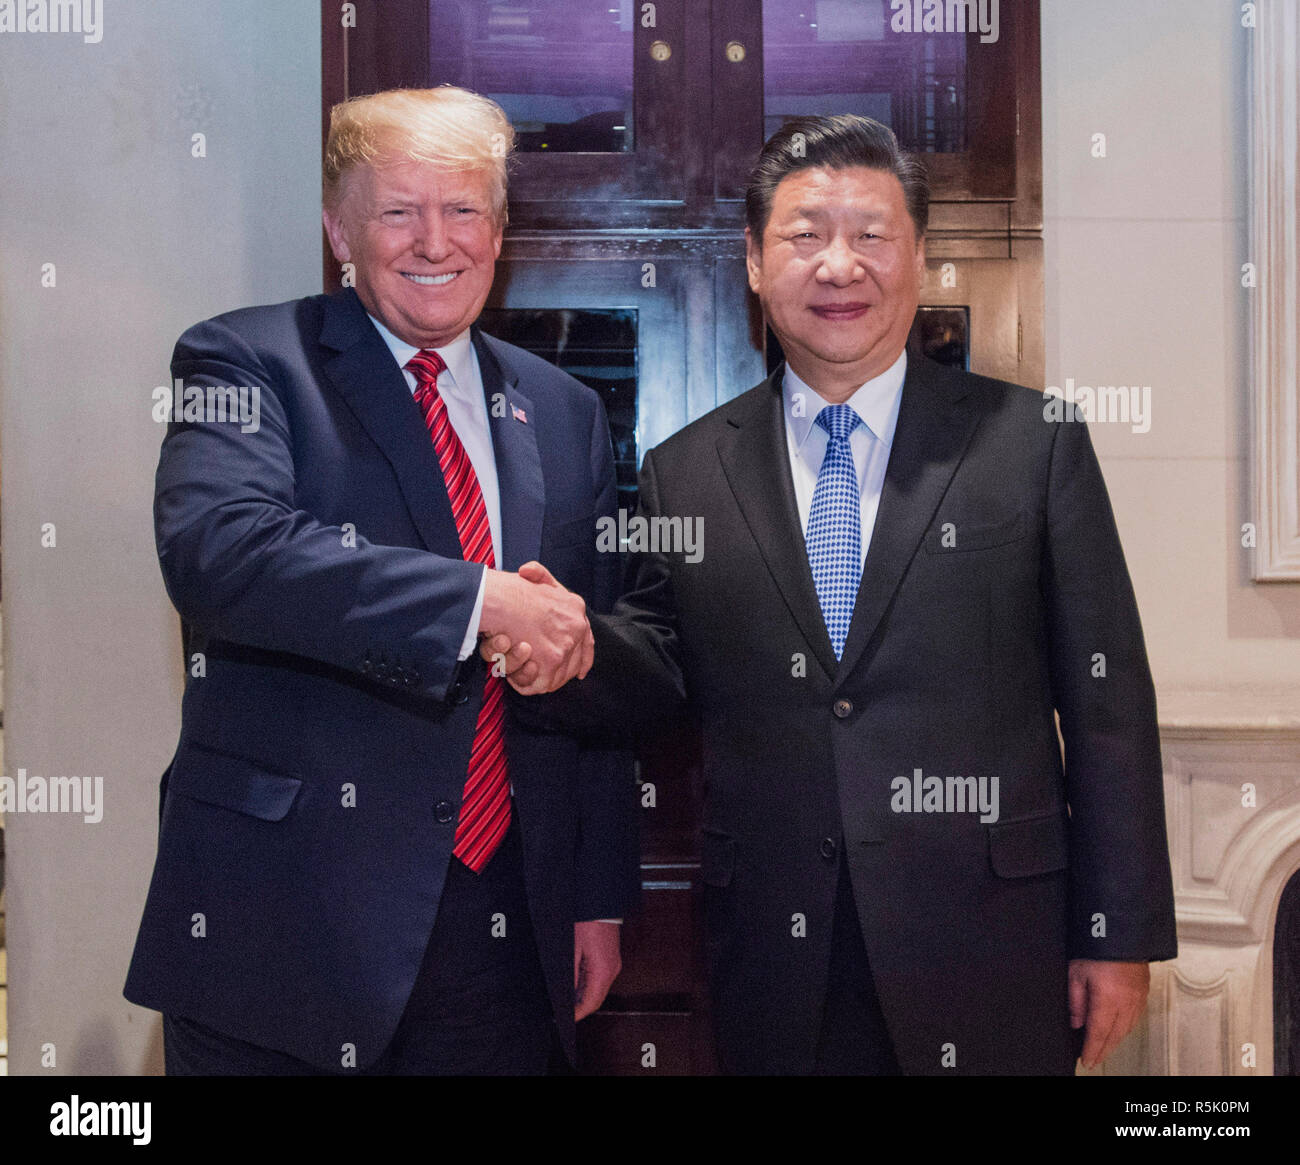 Buenos Aires, Argentina. 1st Dec, 2018. Chinese President Xi Jinping (R) meets with his U.S. counterpart Donald Trump in Buenos Aires, Argentina, Dec. 1, 2018. President Xi attended a working dinner with President Trump in Buenos Aires on Saturday. Credit: Li Xueren/Xinhua/Alamy Live News - Stock Image